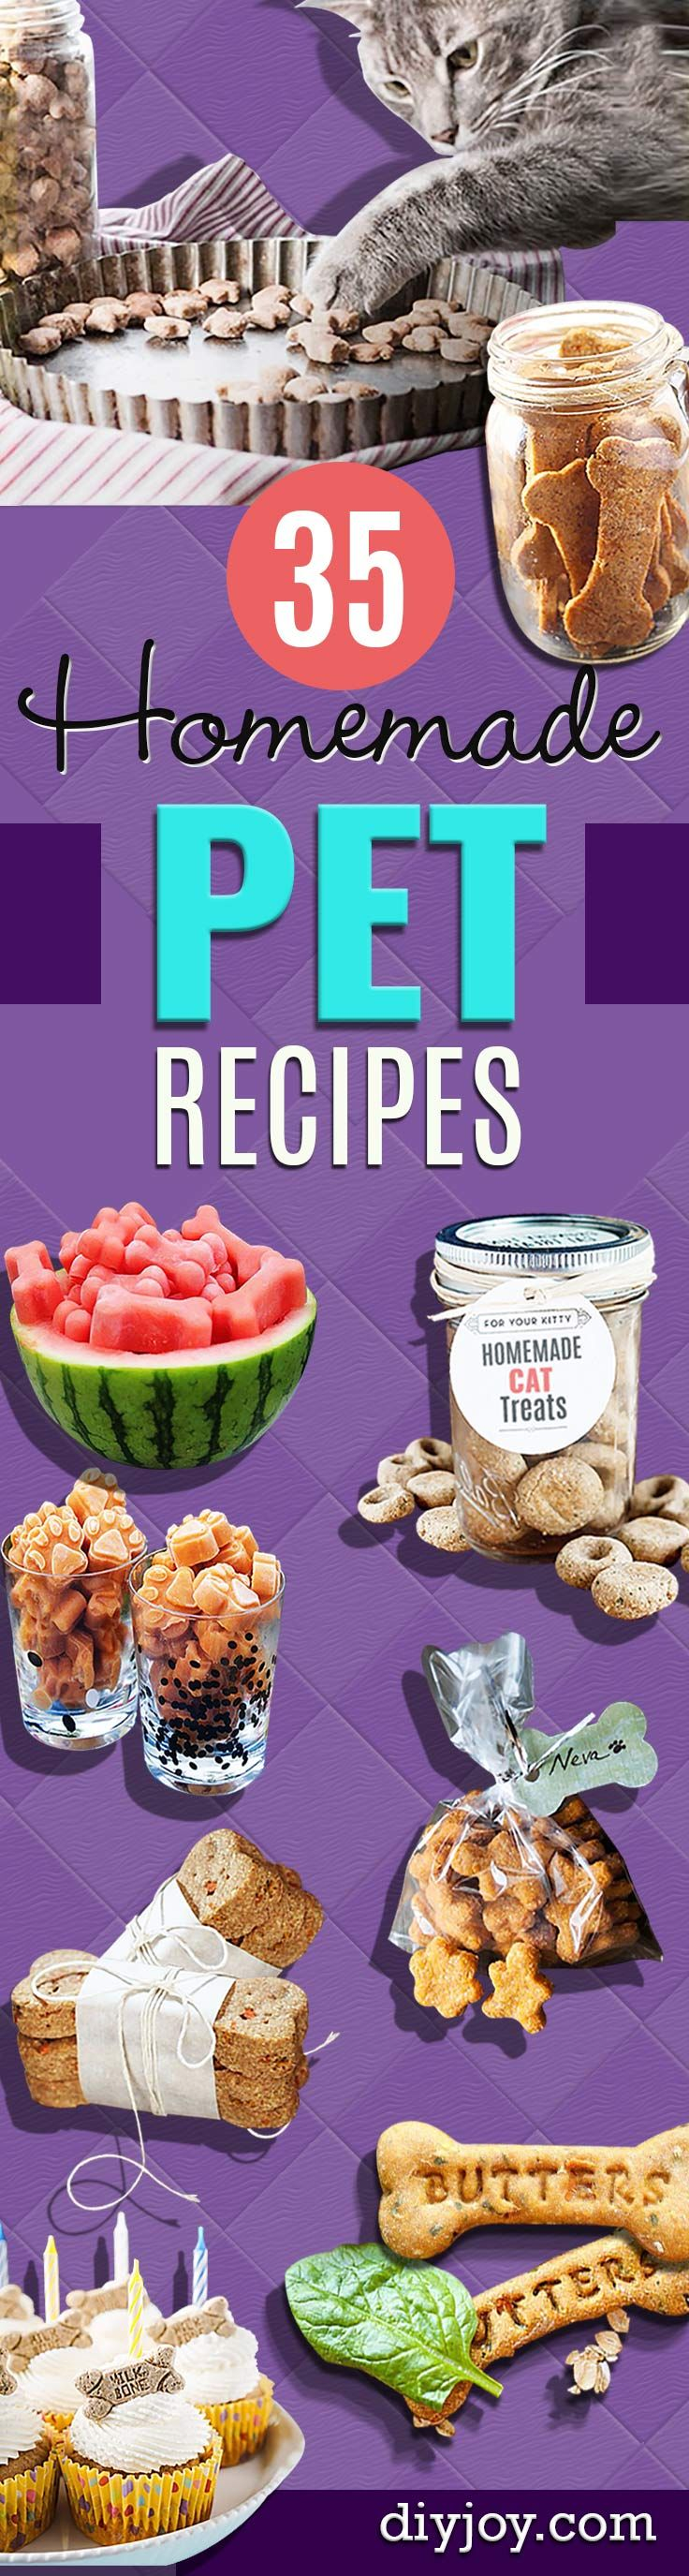 100+ Dog Food Recipes On Pinterest  Homemade Dog Food, Homemade Dog And  Food For Dogs